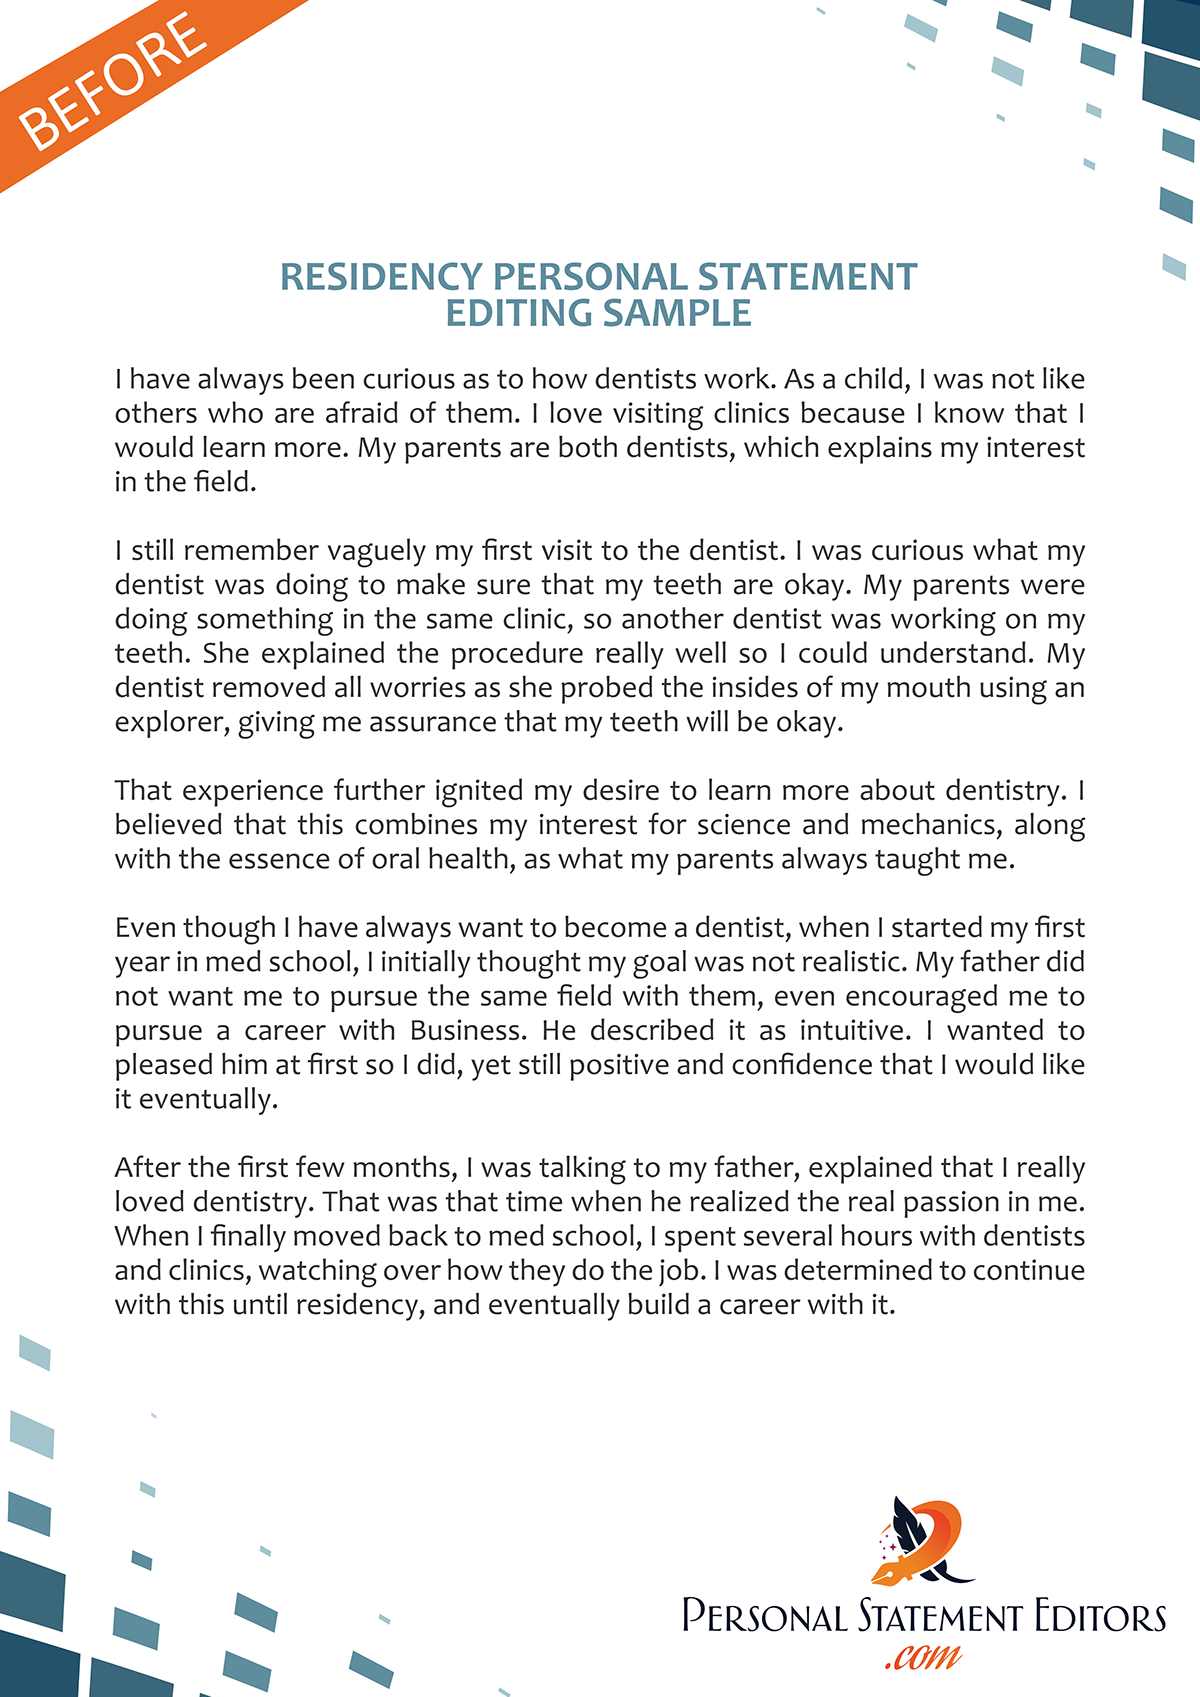 Residency Personal Statement Editing Before Sample